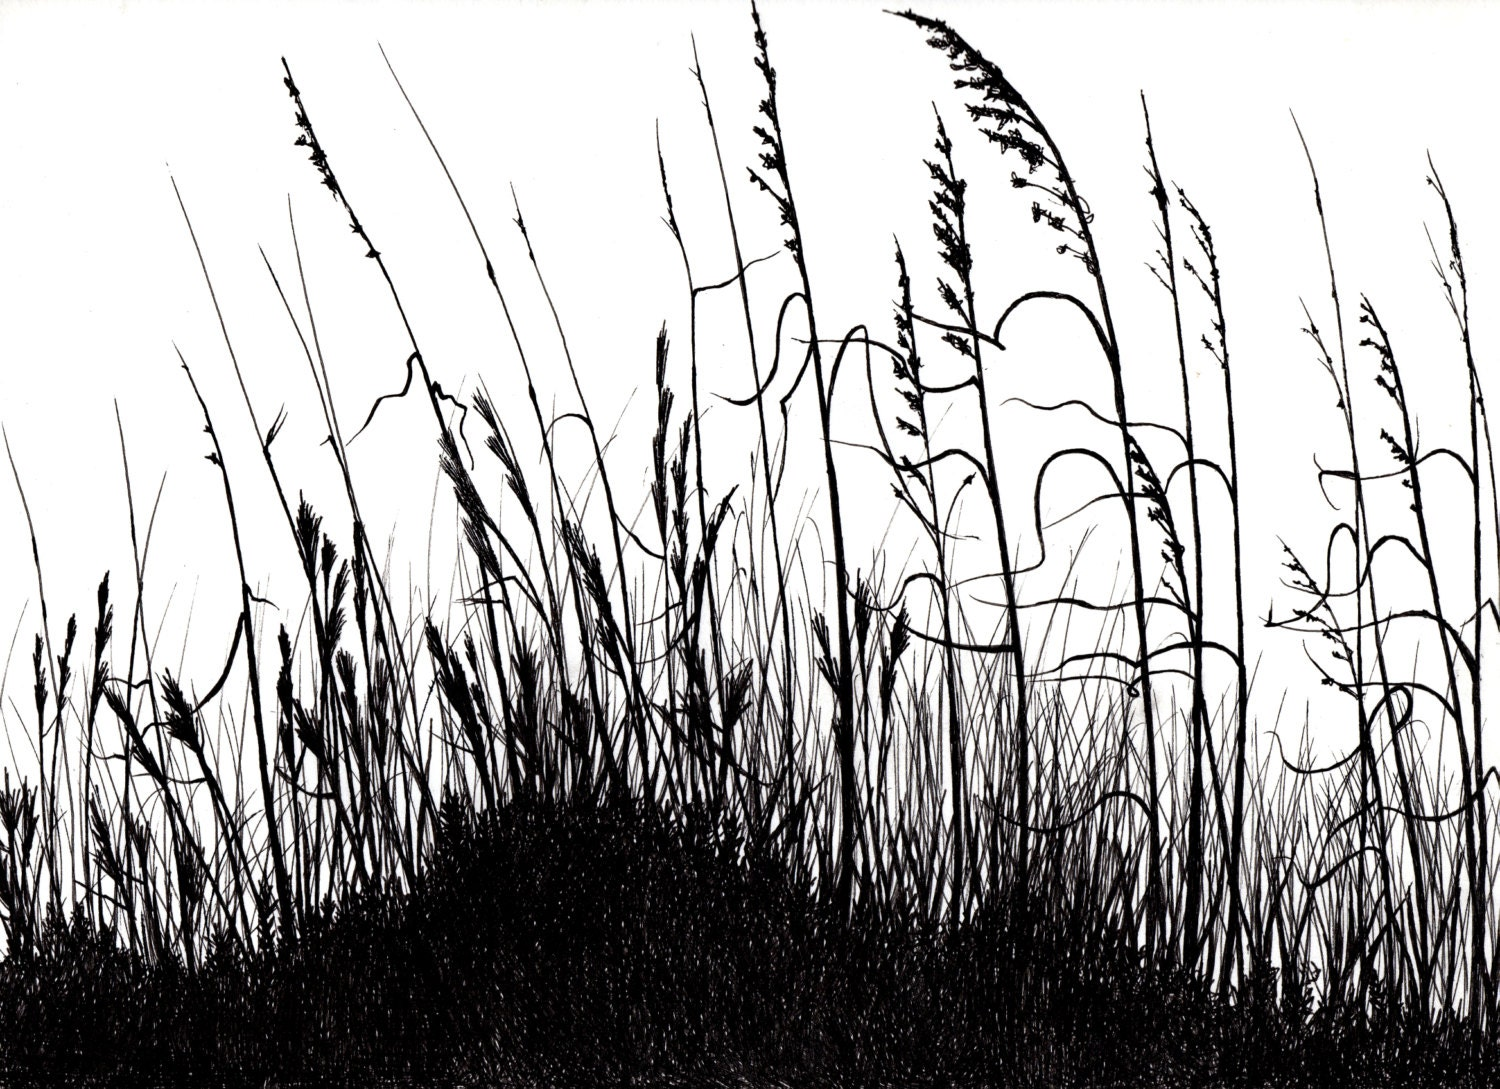 Line Drawing Grass : Black and white drawing grass pictures to pin on pinterest